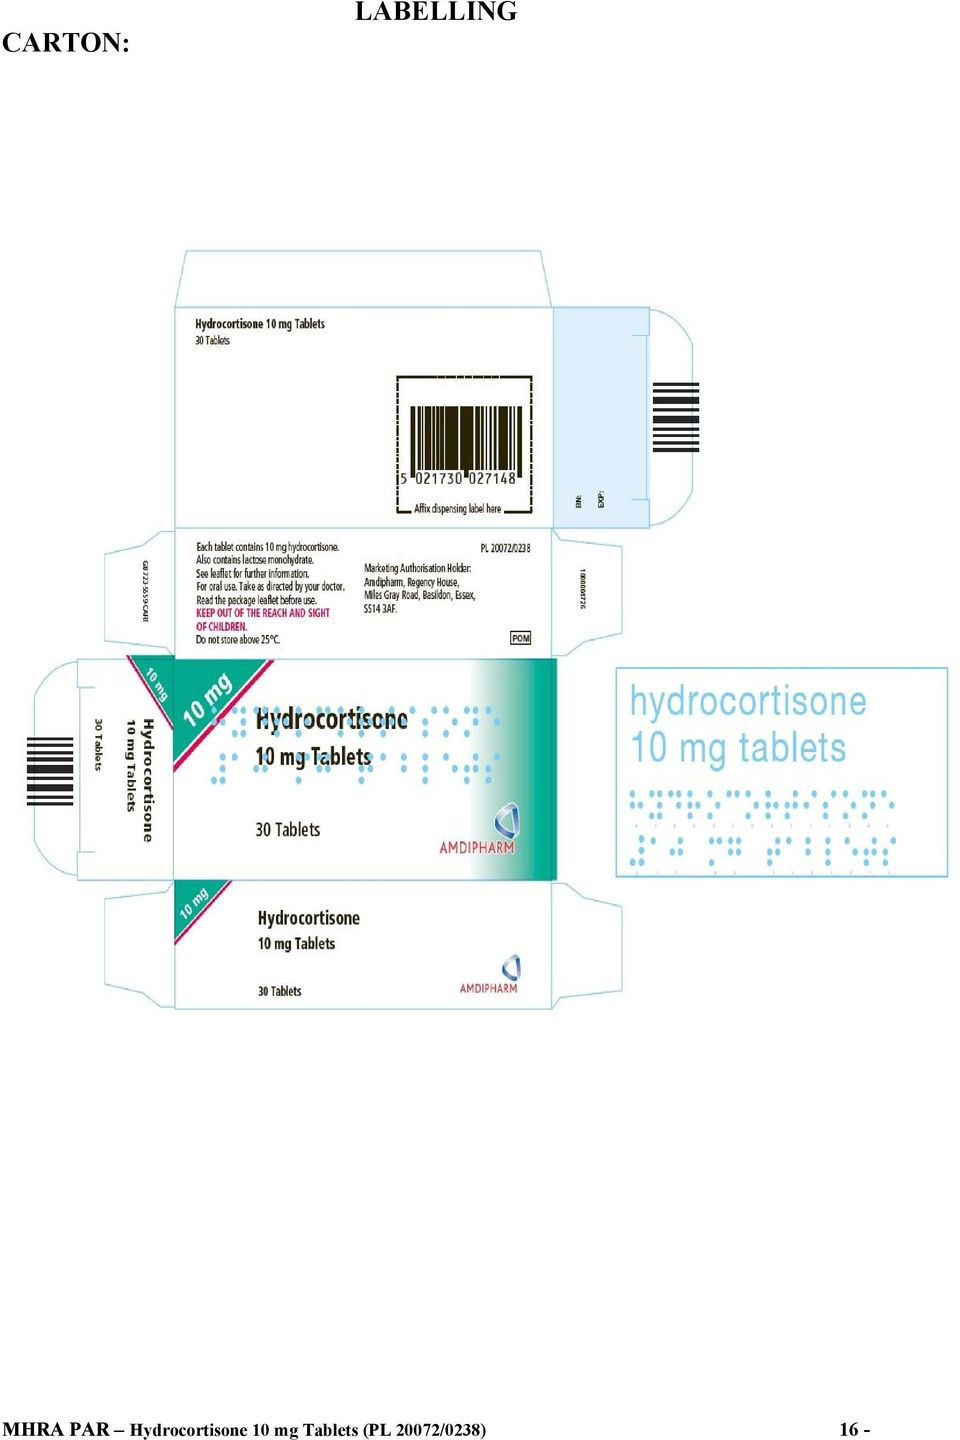 Hydrocortisone 10